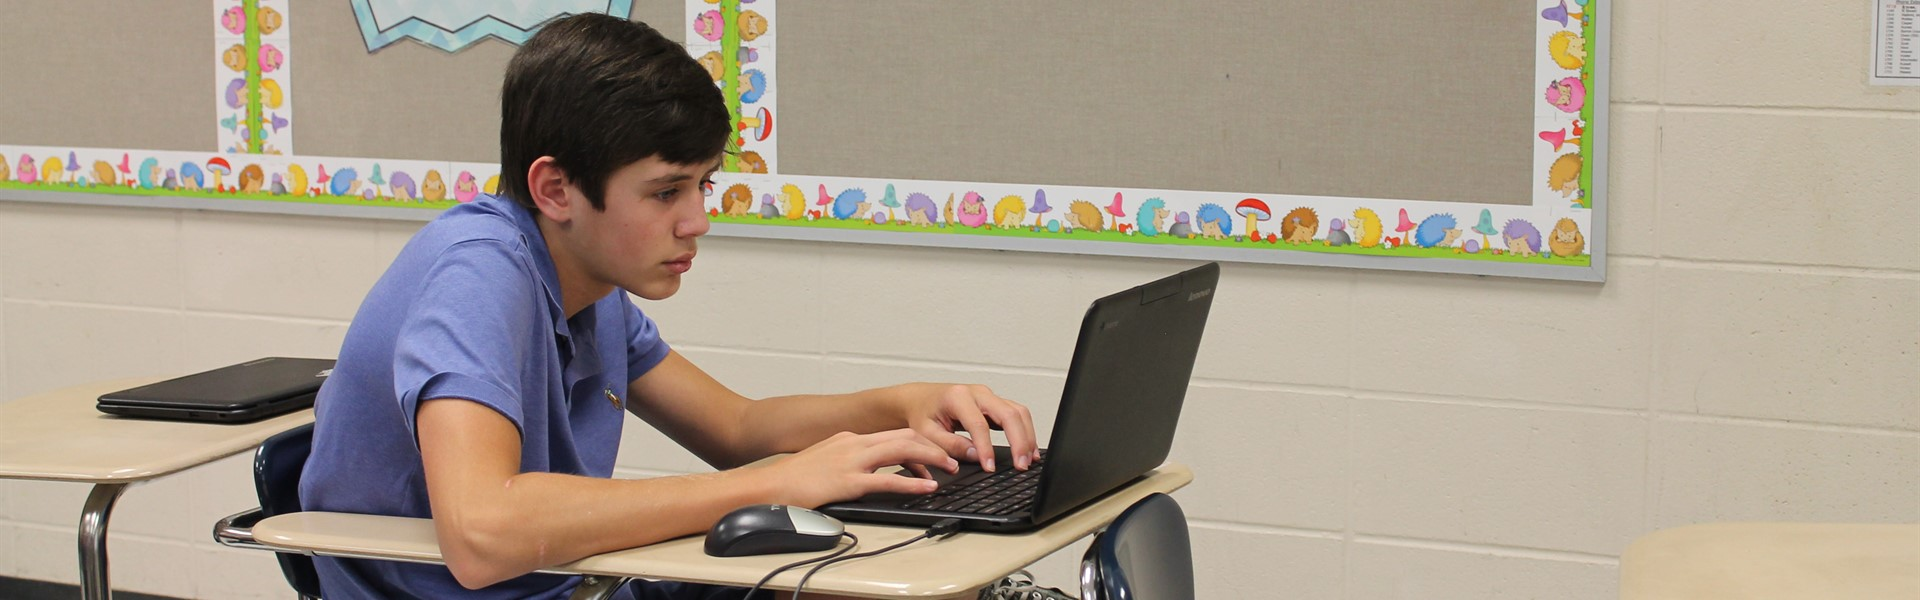 Student learning with Chromebook